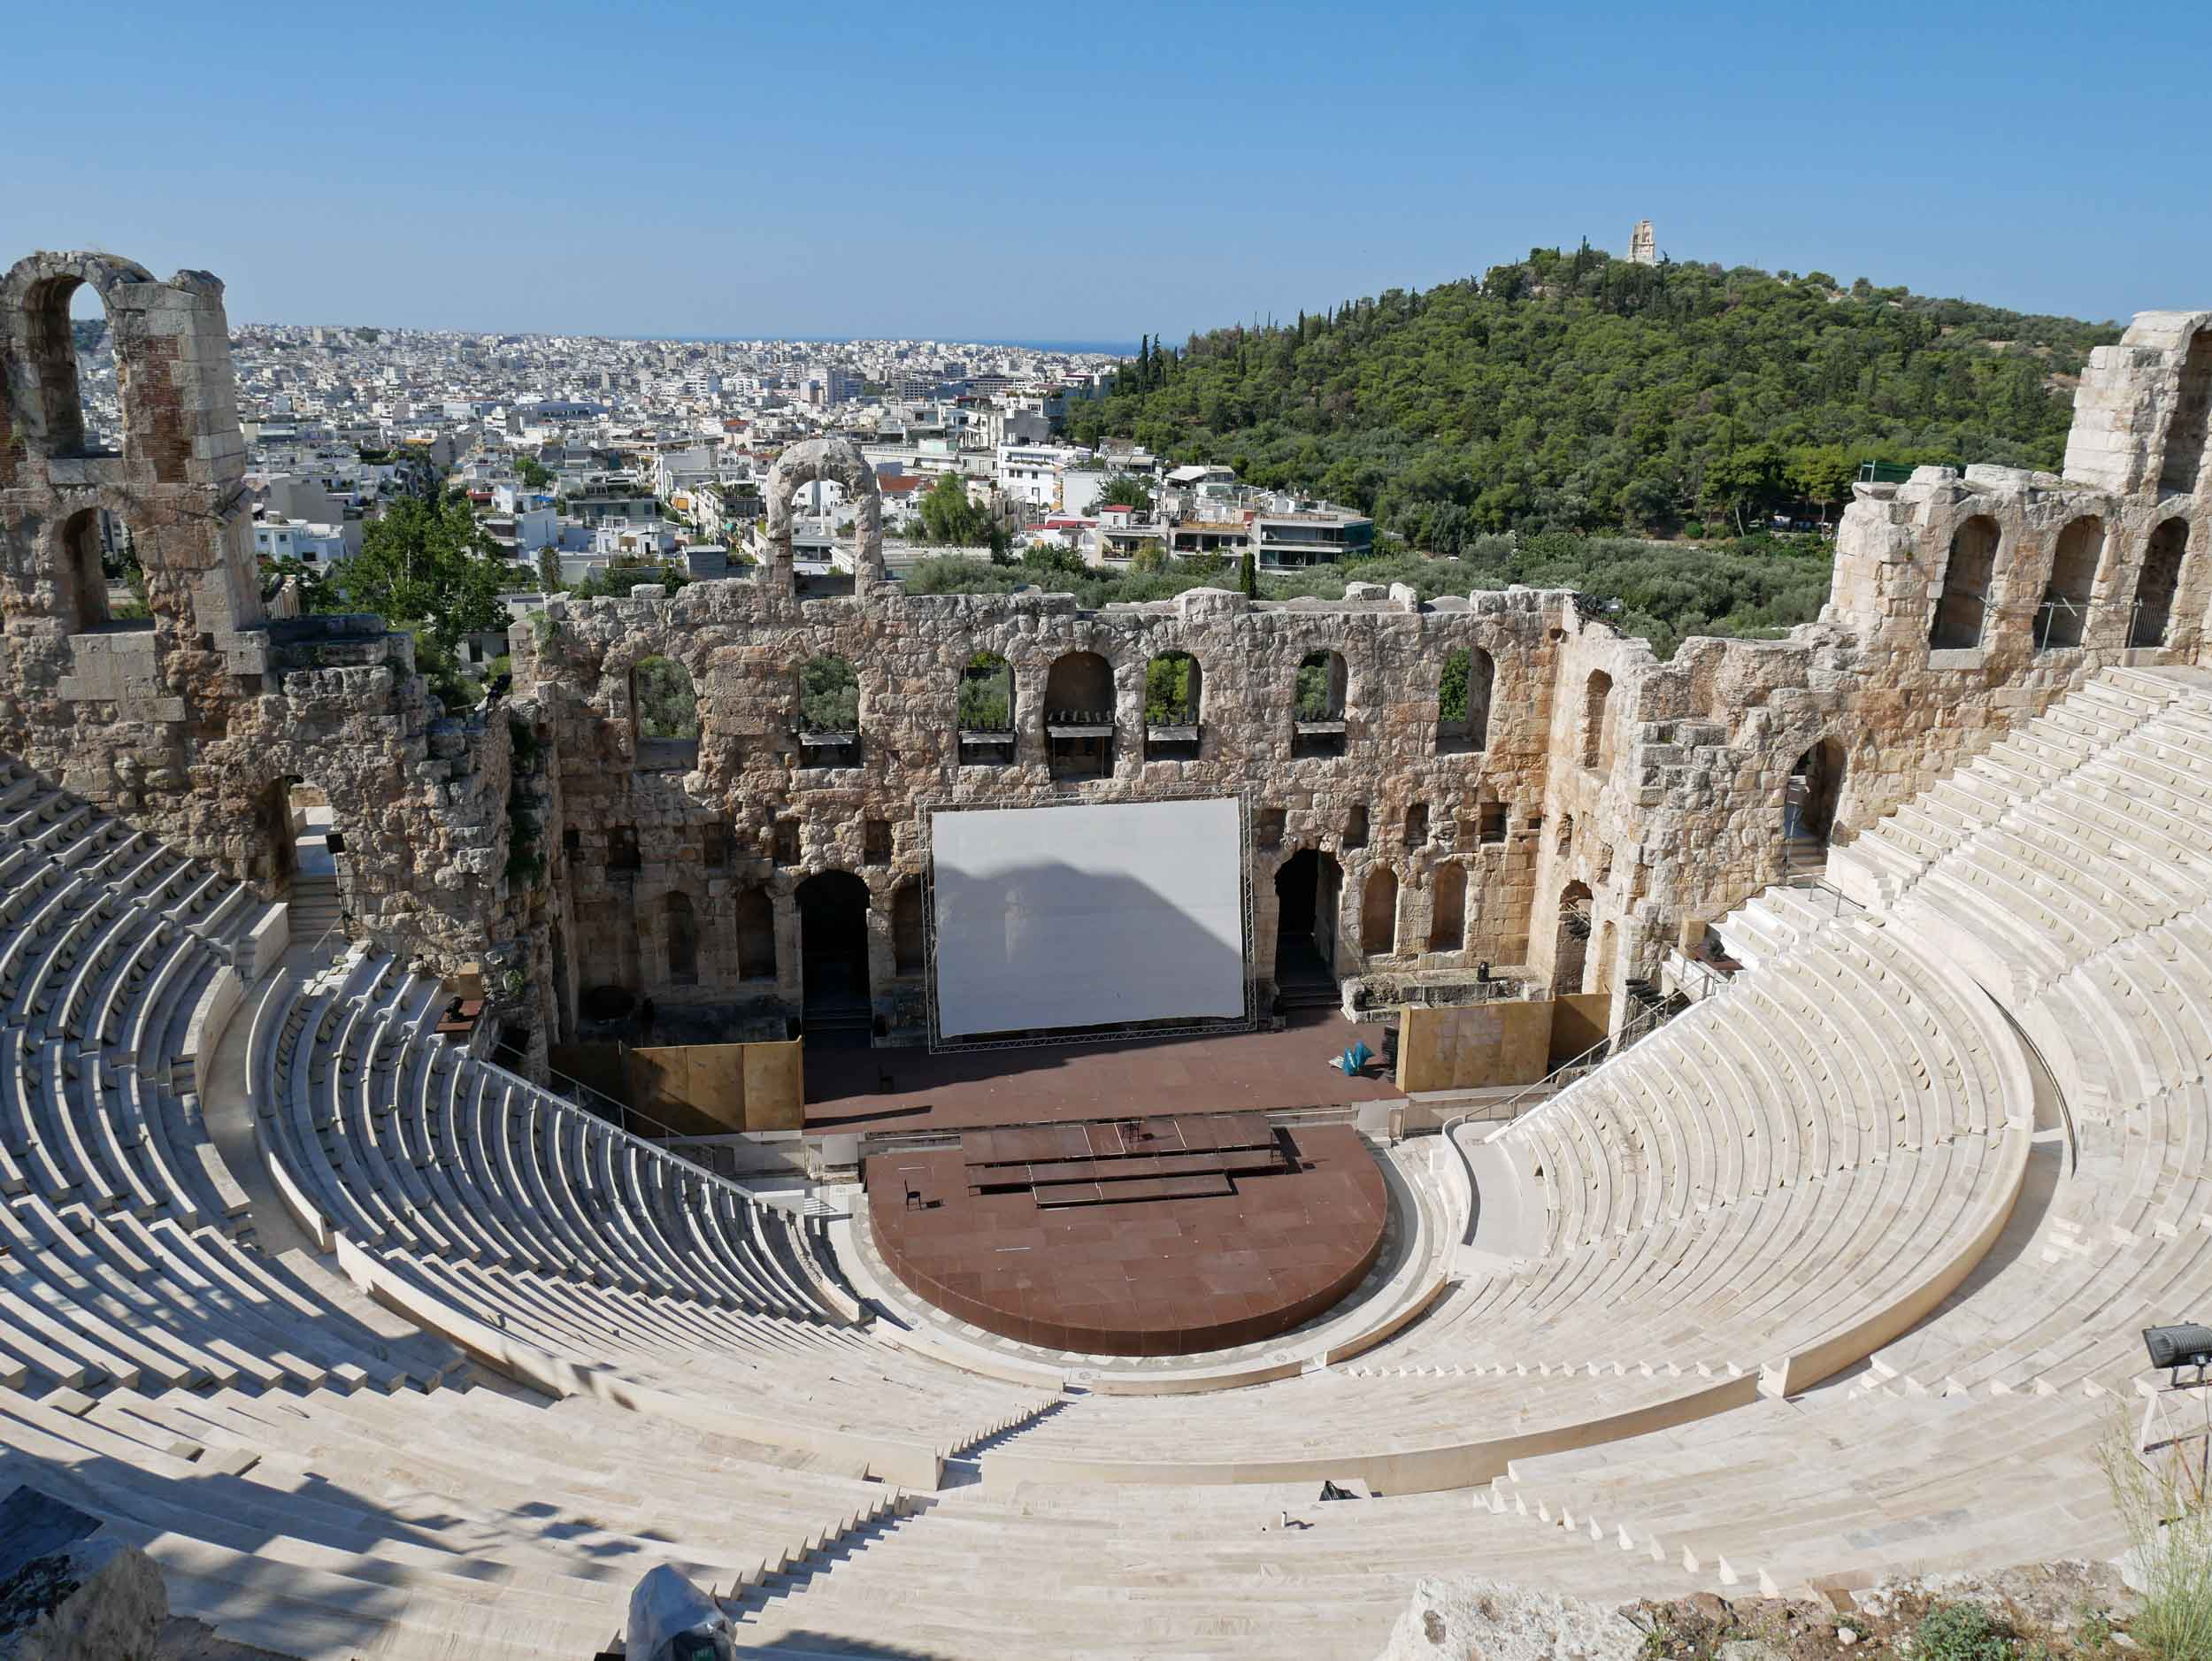 Close up view of the Ancient Odeum of Acropolis, the Theater of Herod Atticus, which was built in 161 AD and restored in the 1950s. Since then it has been the main venue of the Athens Festival which runs from May through October each year, featuring a variety of acclaimed Greek as well as International performances.